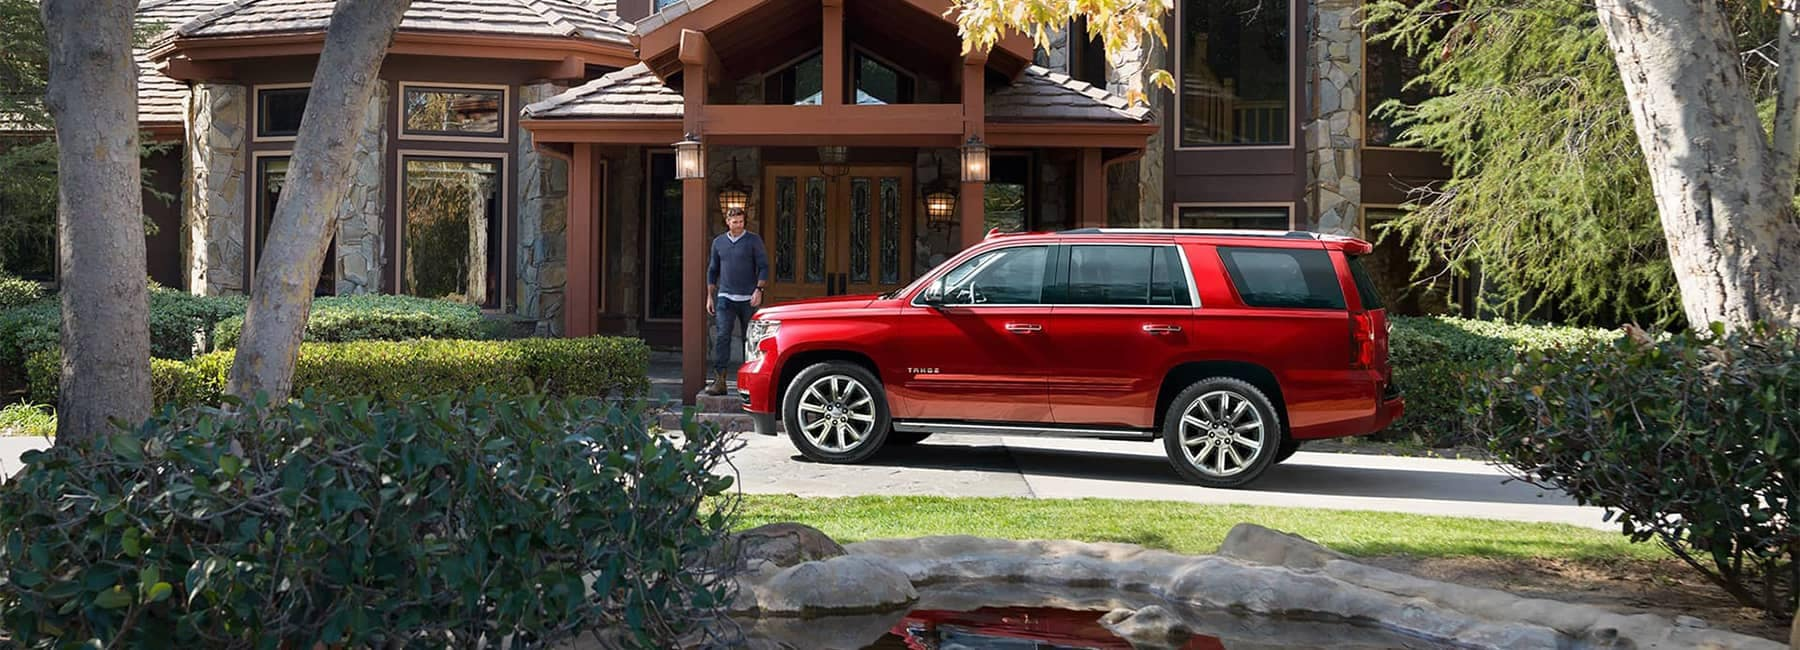 2019 Red Chevrolet Tahoe Parked in front of a House